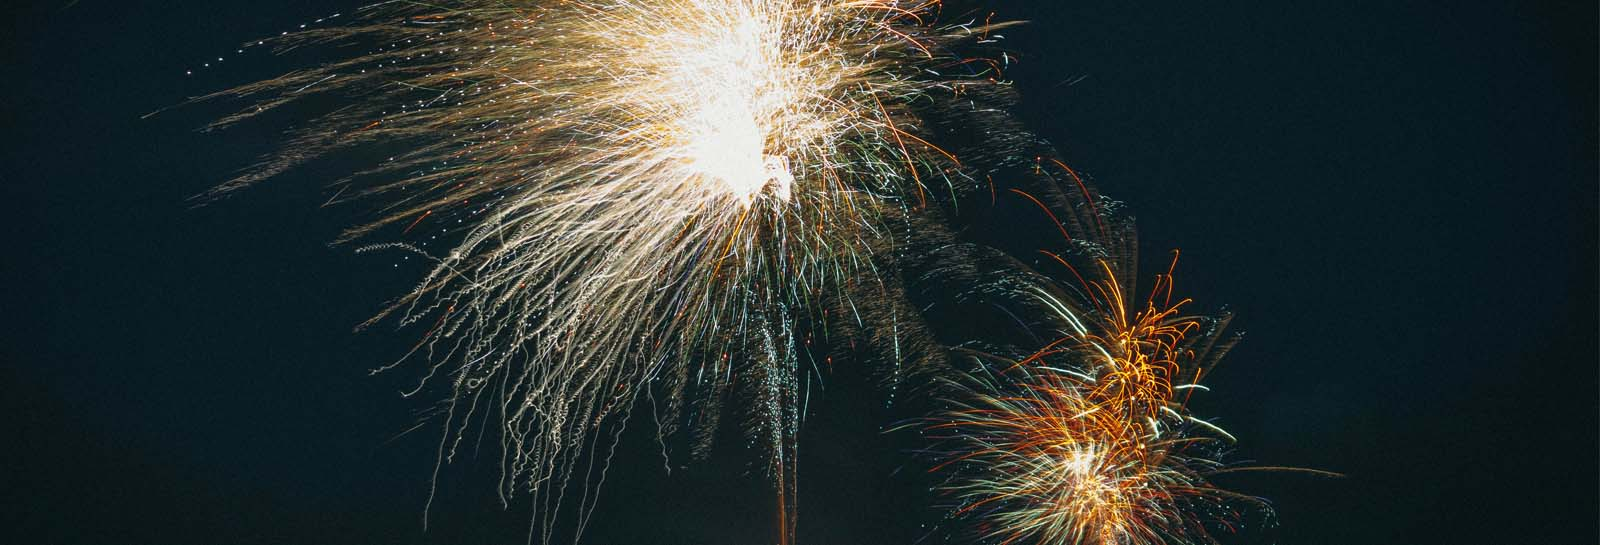 5 marketing campaigns that created fireworks in 2015